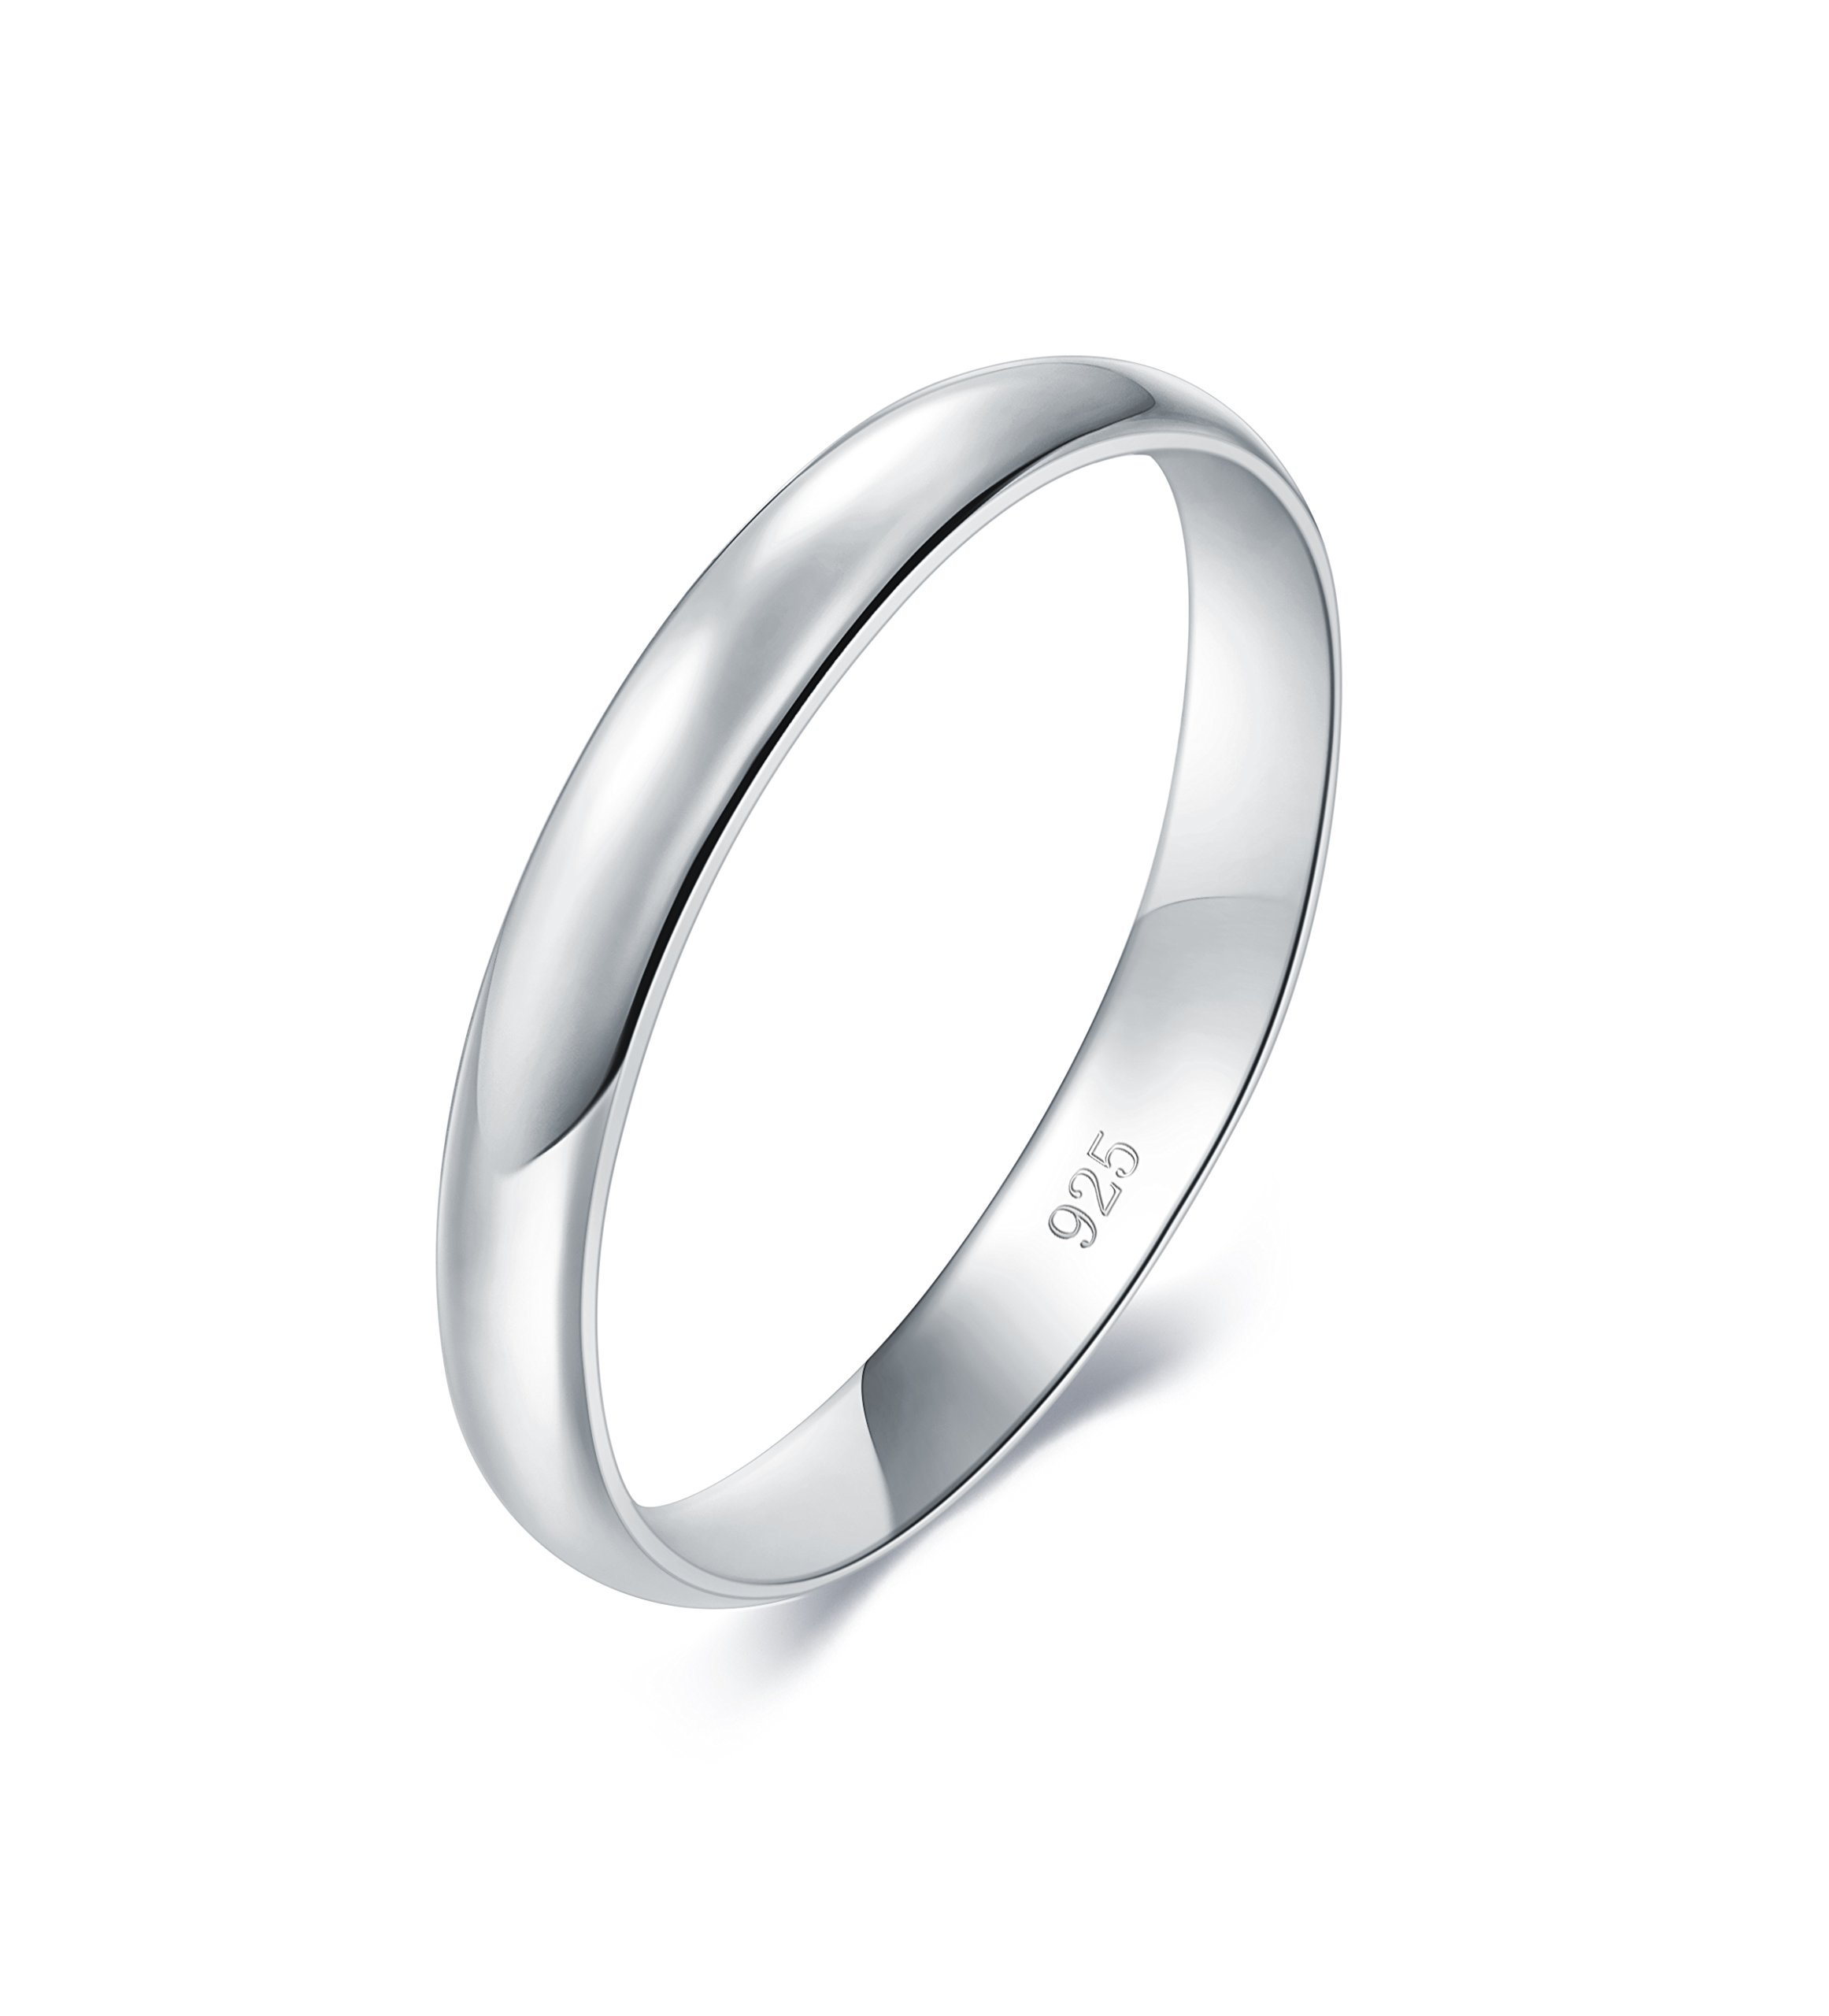 BORUO 925 Sterling Silver Ring High Polish Plain Dome Tarnish Resistant Comfort Fit Wedding Band 3mm Ring